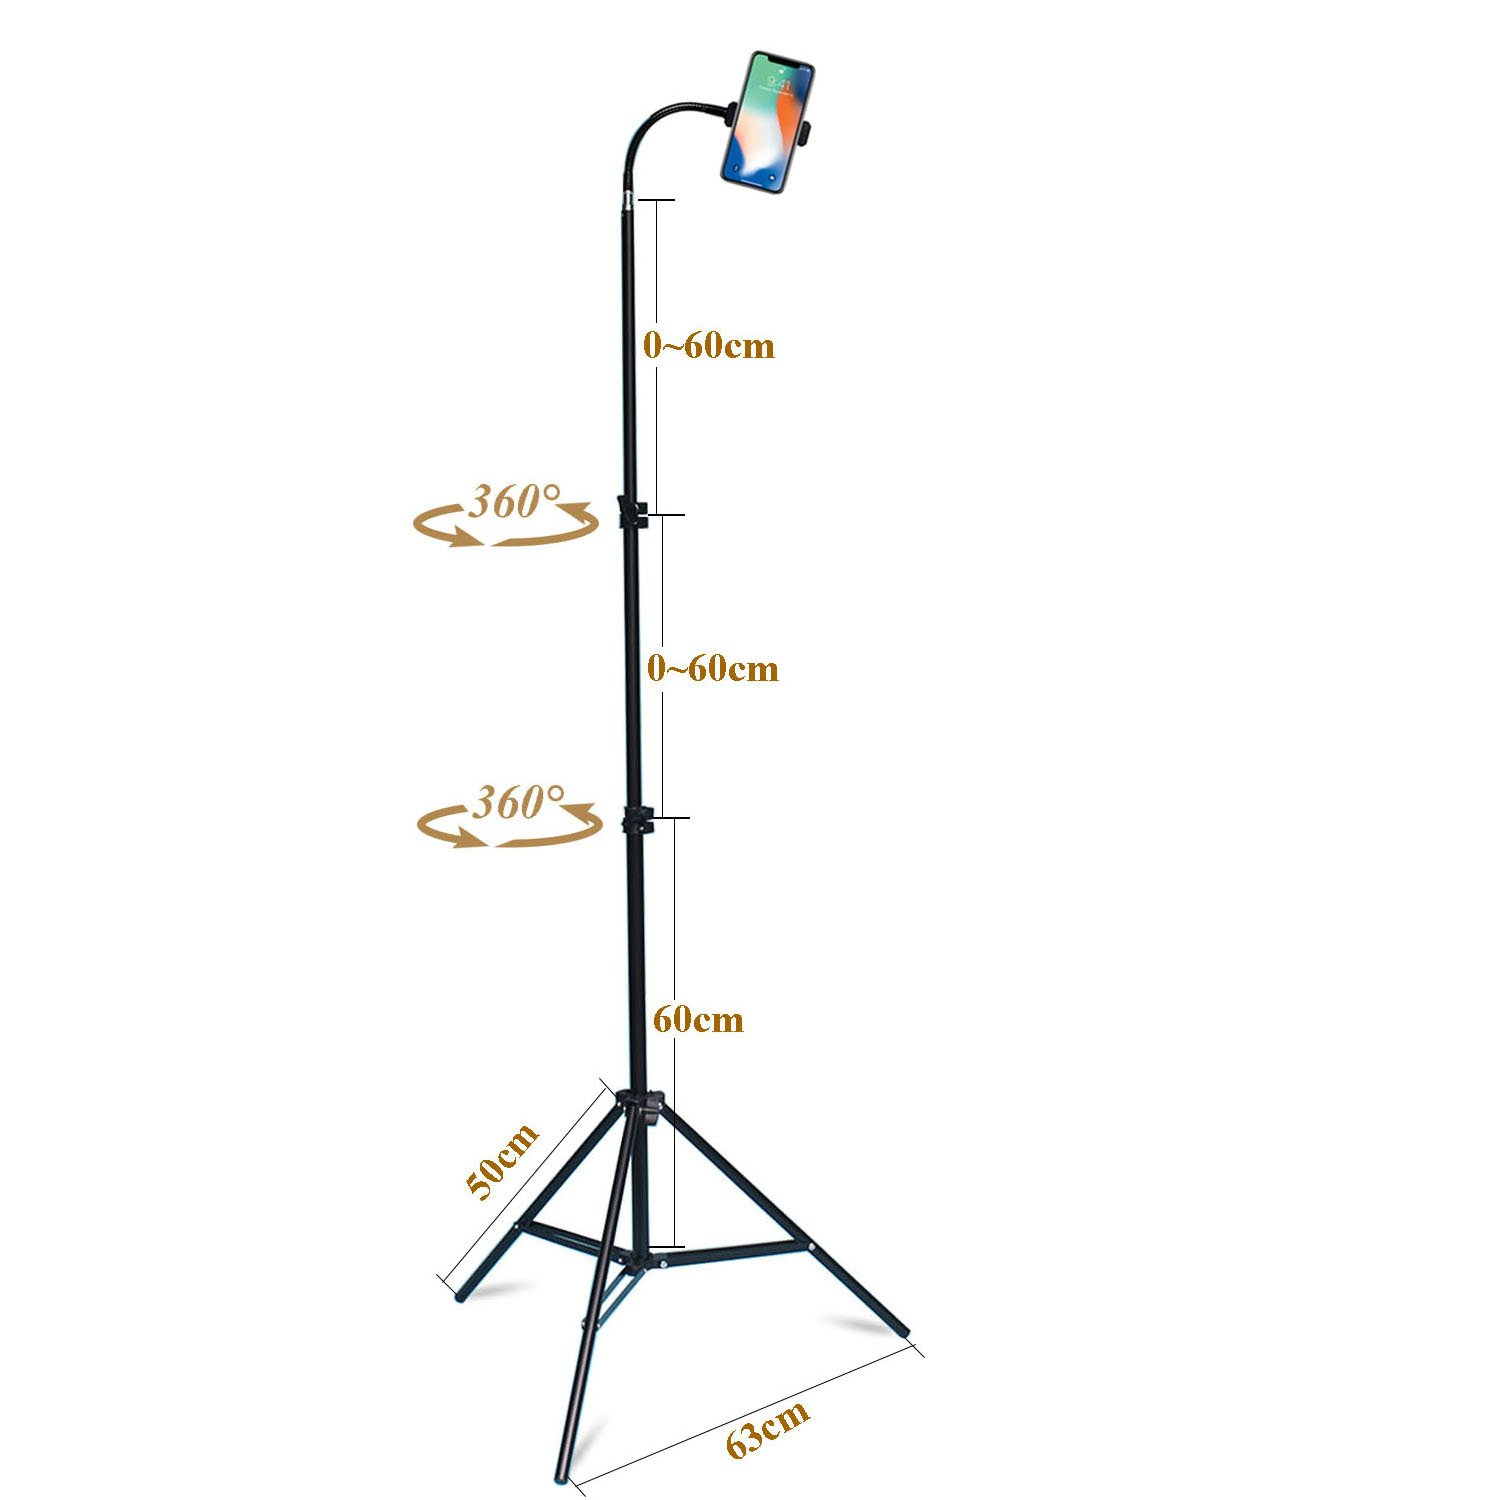 Haitent Retractable Adjustable Cell Phone Tall Tripod Stand Holder for iPhone X,8,7 Plus, 7, 6, 6 Plus,360 Degree Rotatable Flexible Universal Gooseneck Smartphone Stand with Clamp by Haitent (Image #2)